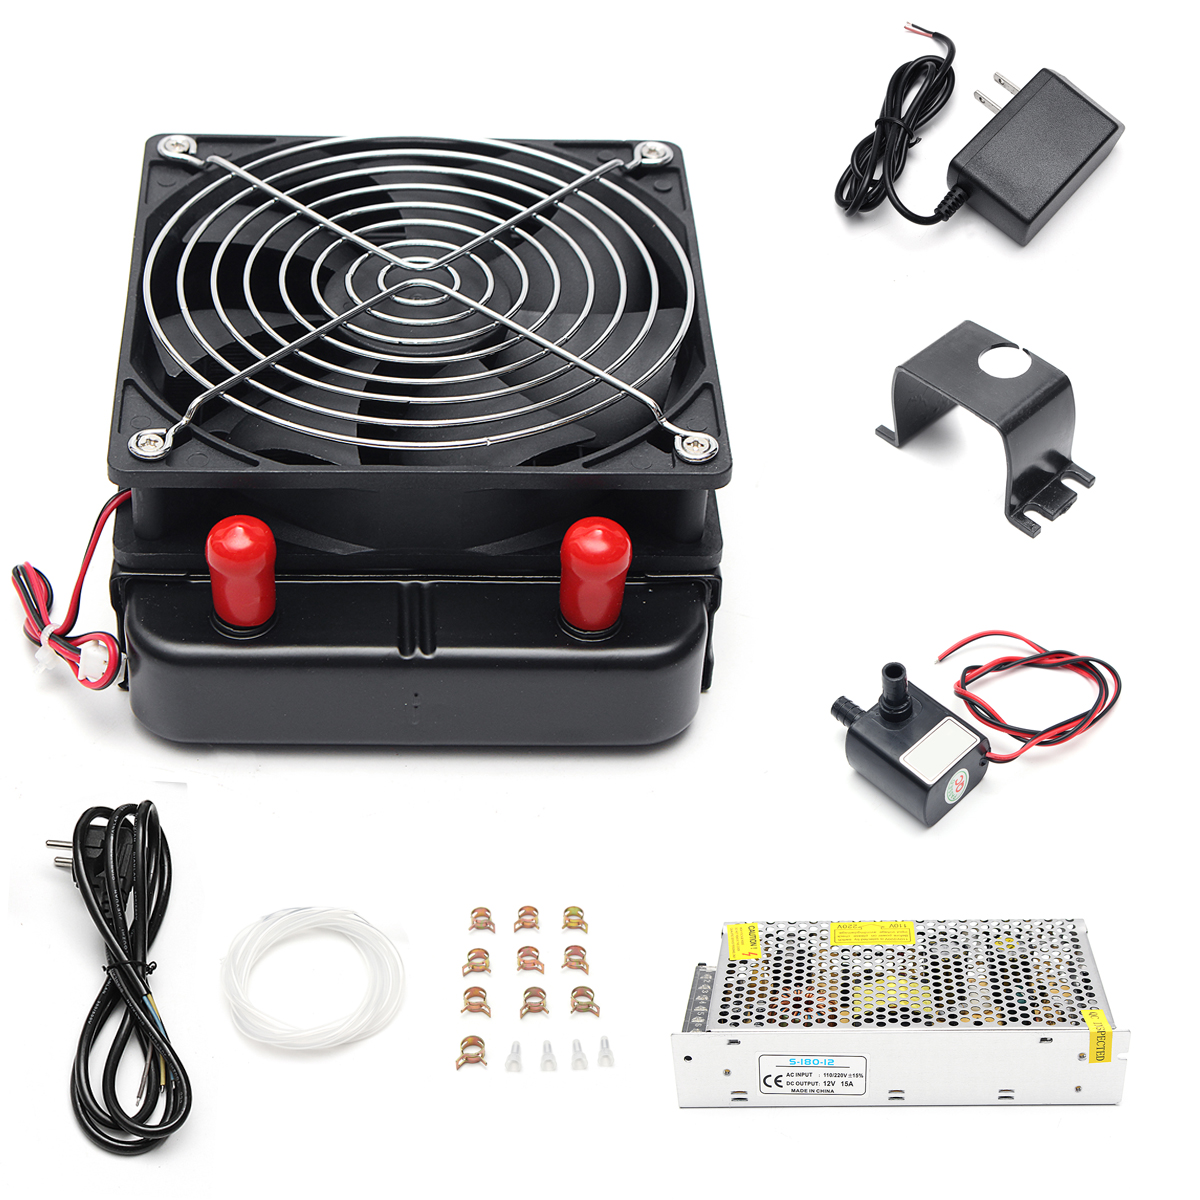 12V DIY Semiconductor Thermoelectric Peltier Refrigeration Cooling System Kit Dual Chip for Air Conditioner Computer CPU Cooler ks214 12v 240w semiconductor electronic peltier chip water cooling refrigeration small pet air conditioner aluminum radiator